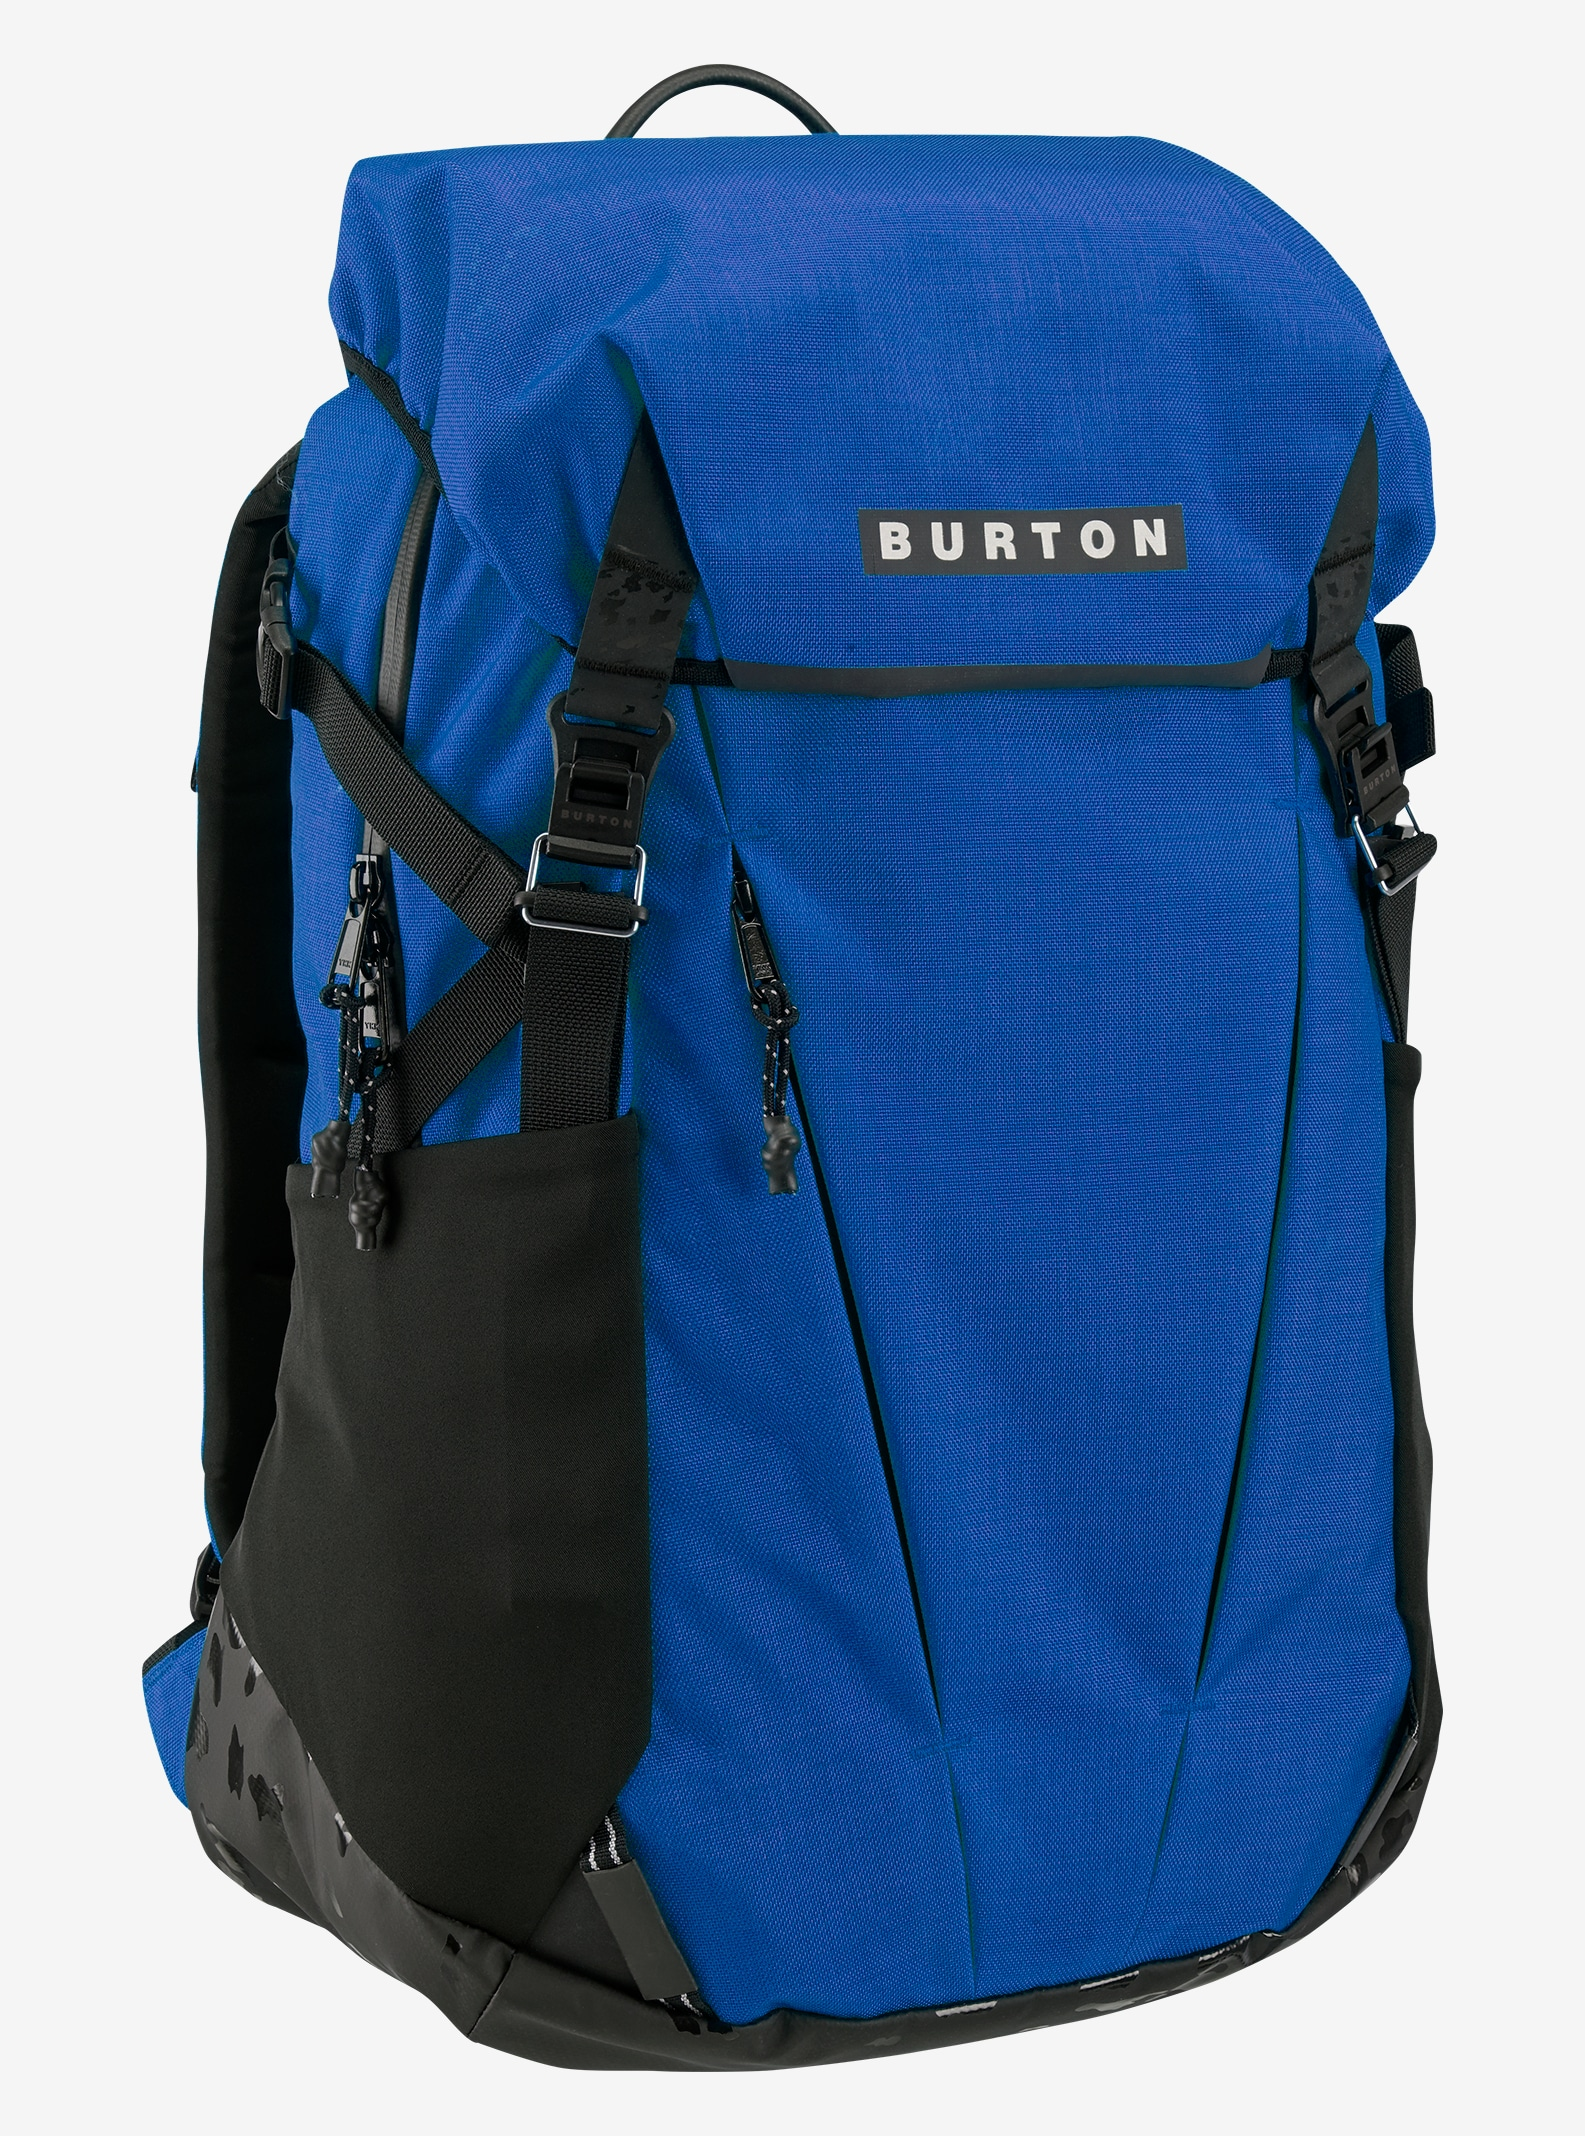 Burton Spruce Backpack shown in Skydiver Heather